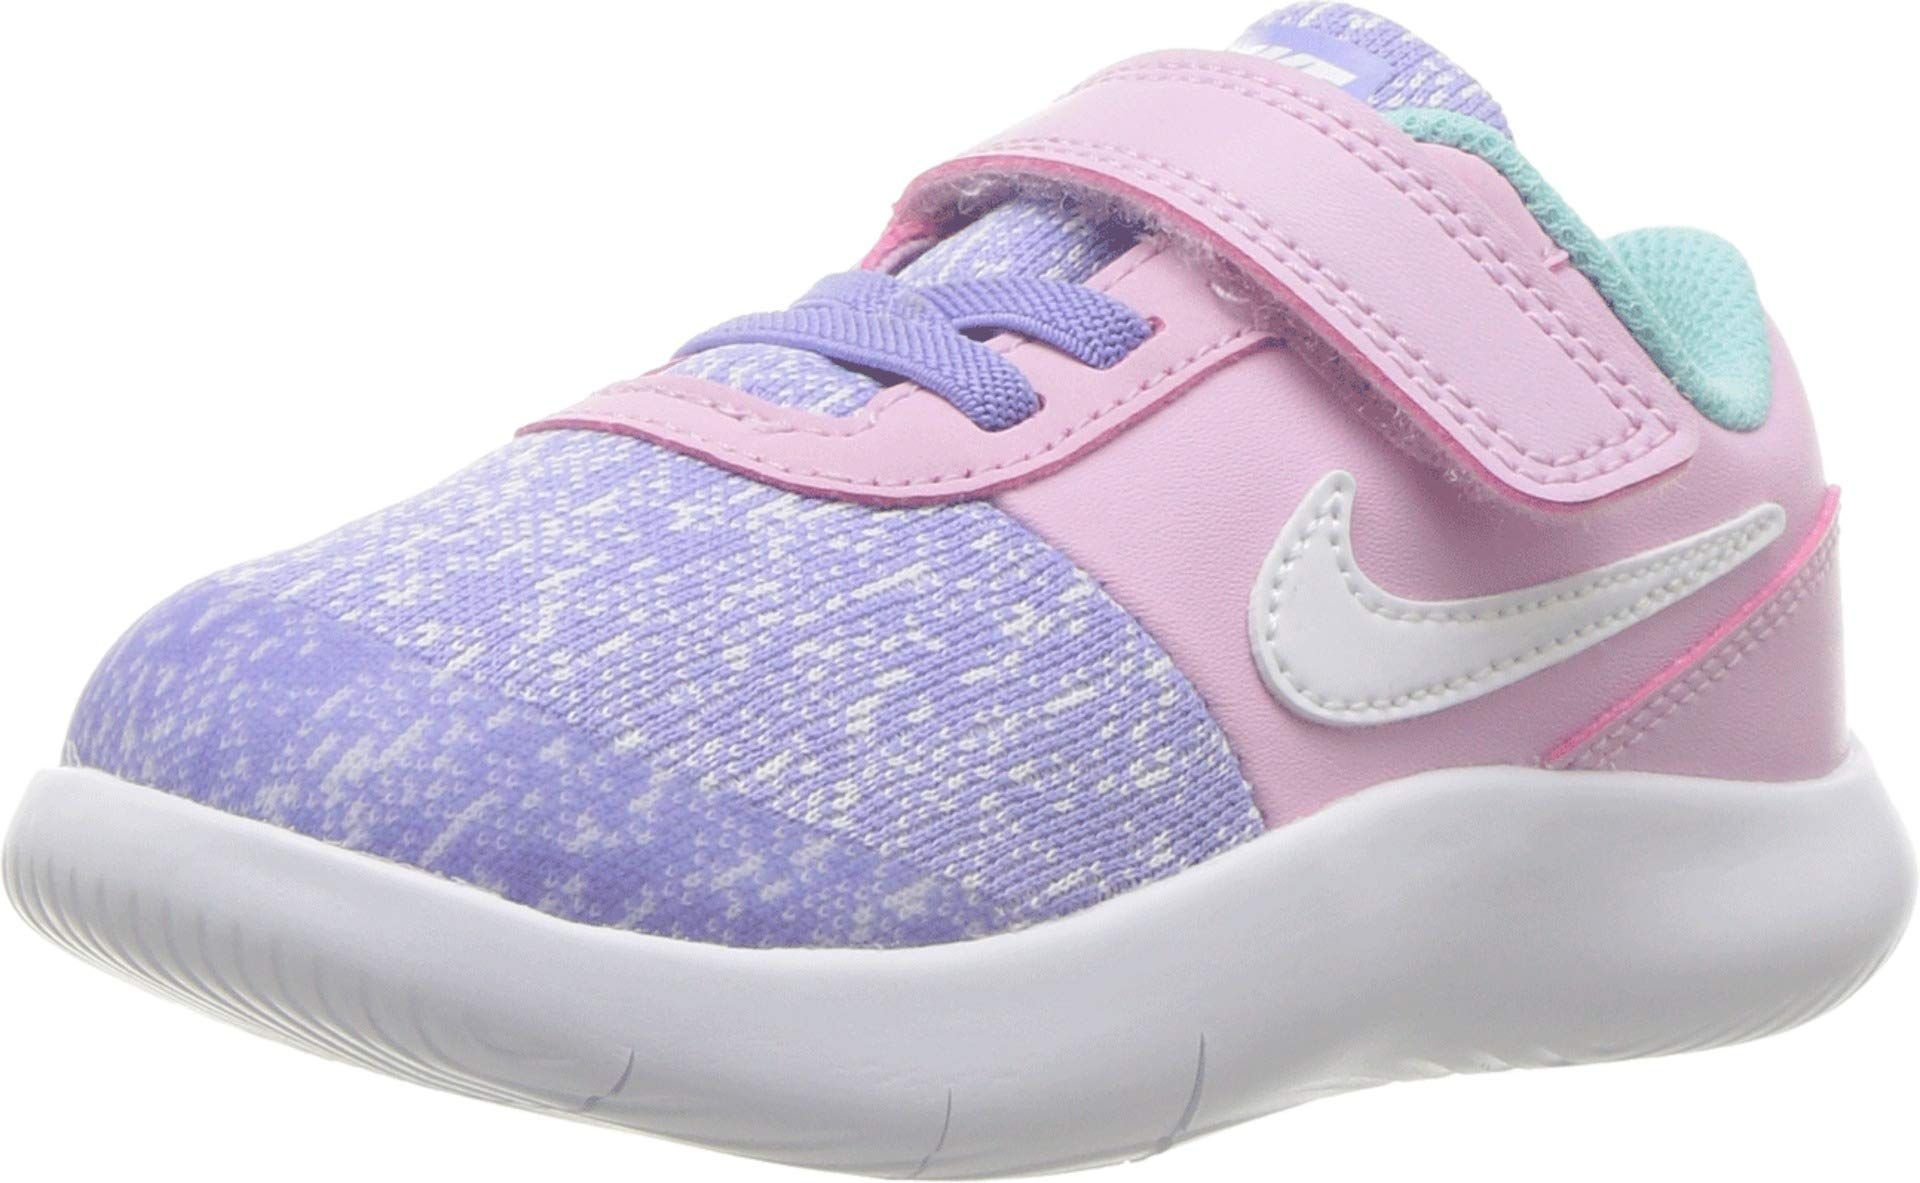 Nike Girls 4-10 Flex Contact Unicorn Sneakers (6M Toddler, Ocnbls/White)